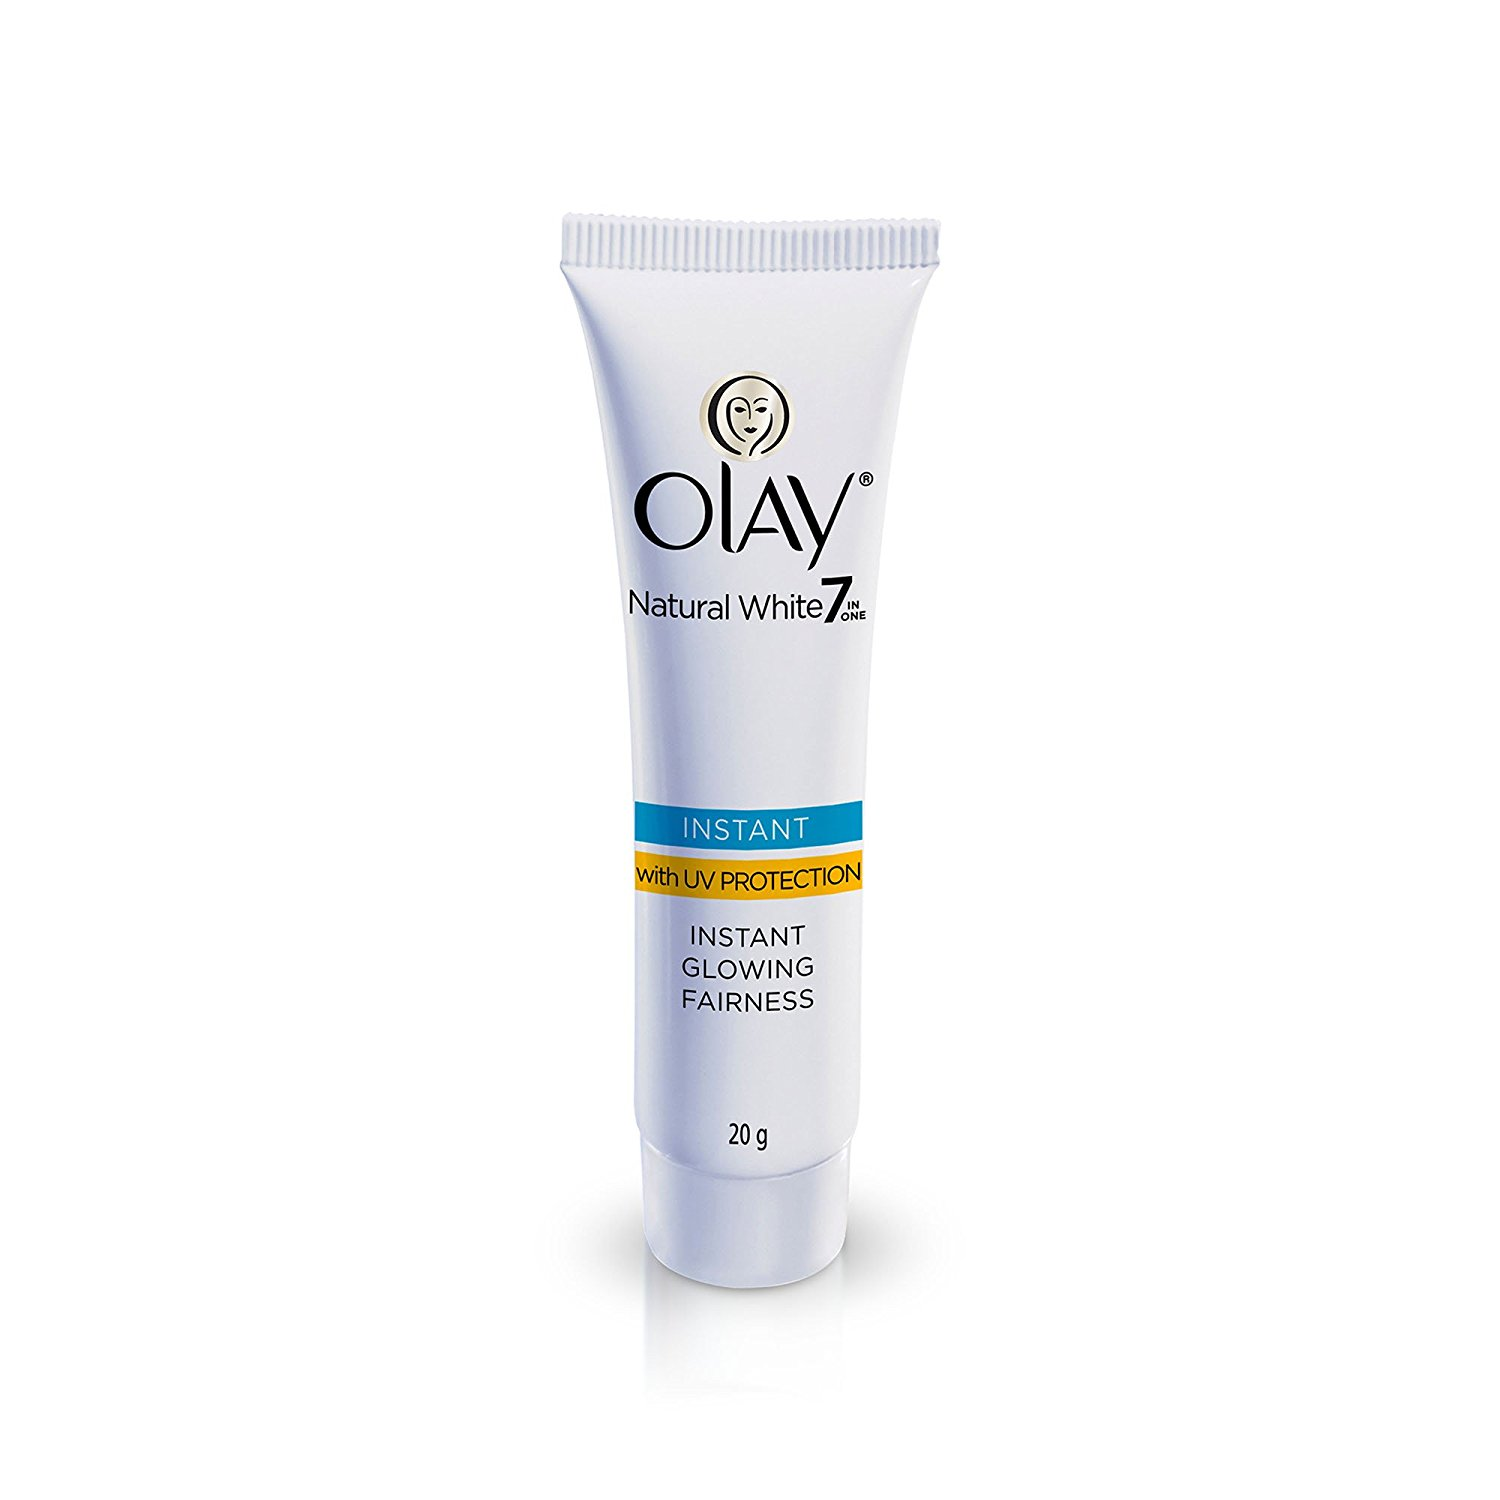 Olay Natural White Insta Glowing 20gm